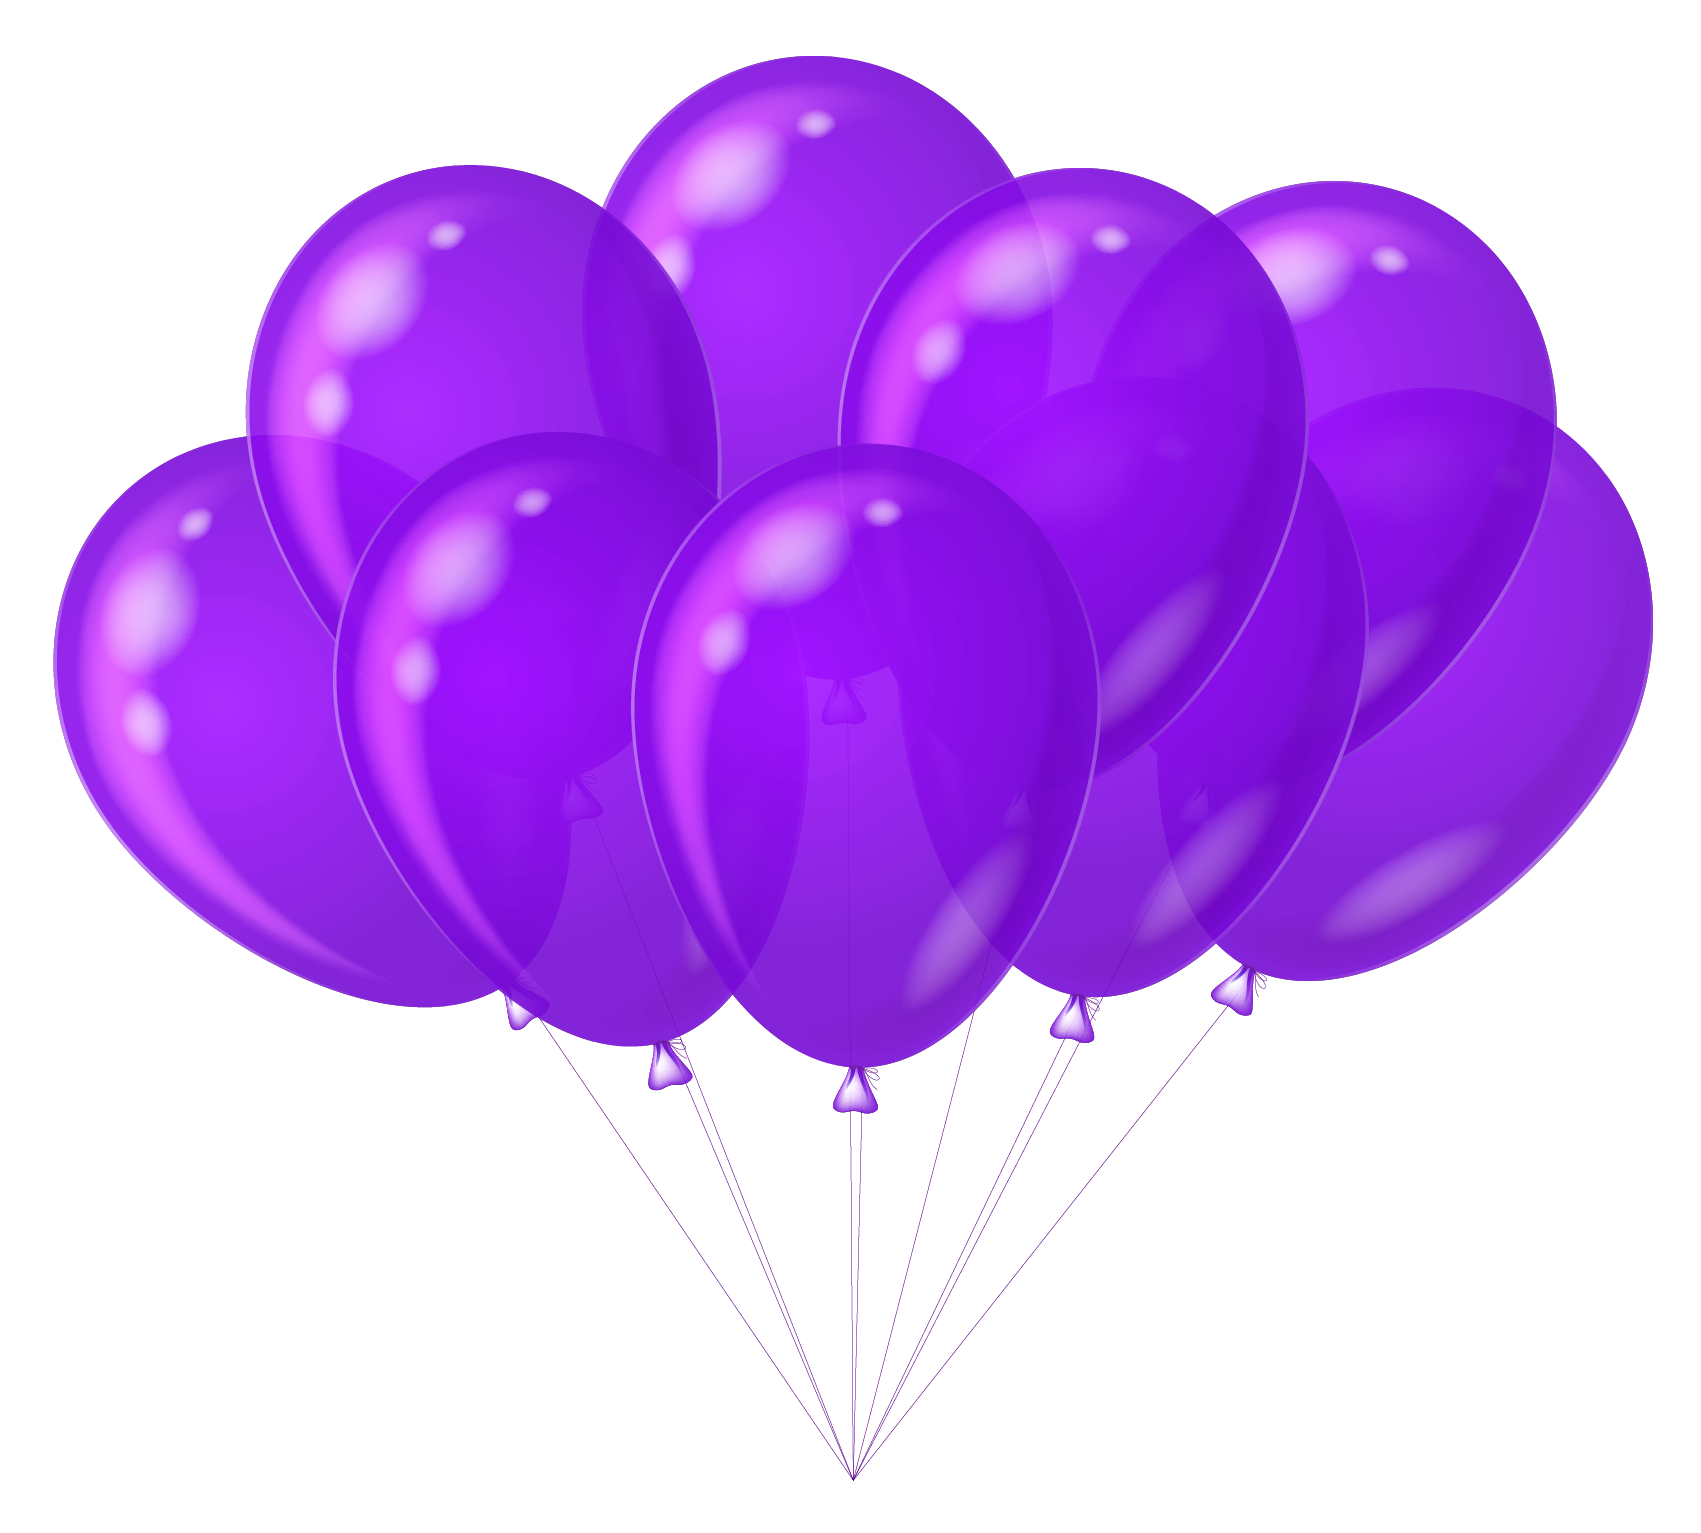 image freeuse download Transparent Purple Balloons Clipart